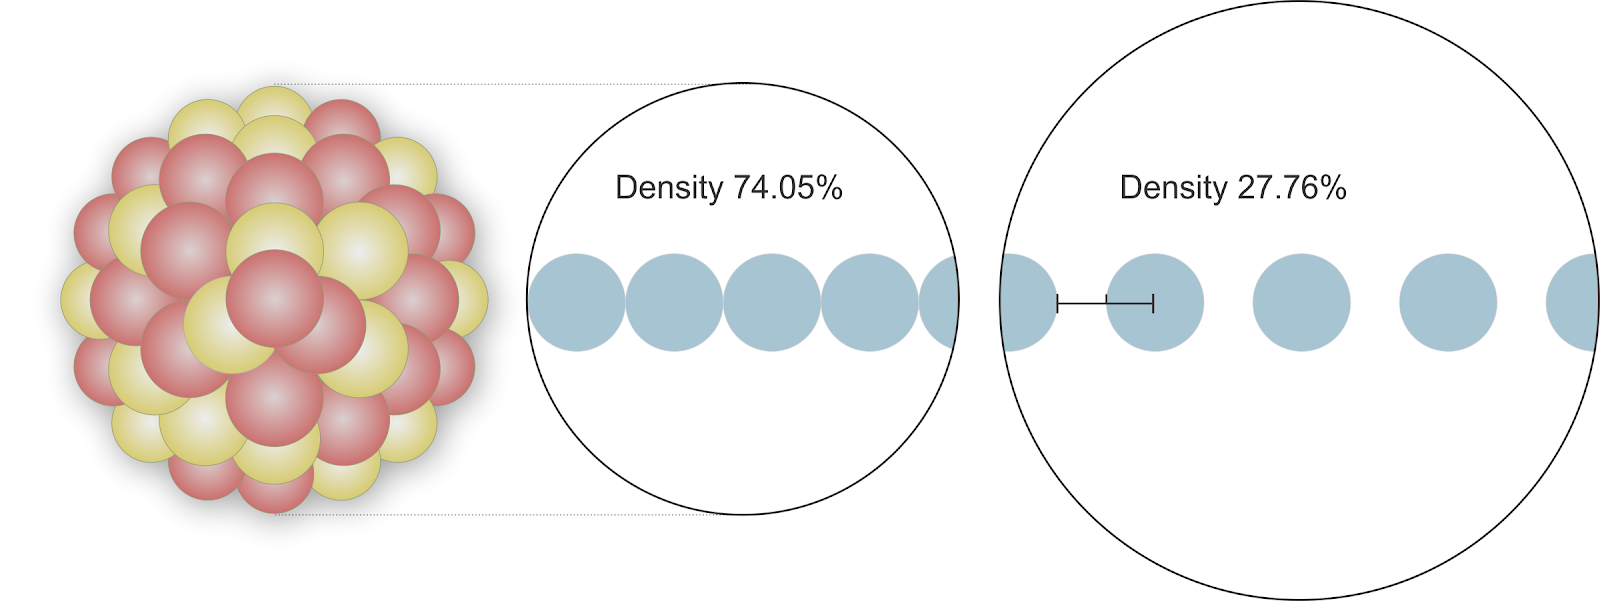 Nucleus density illustration